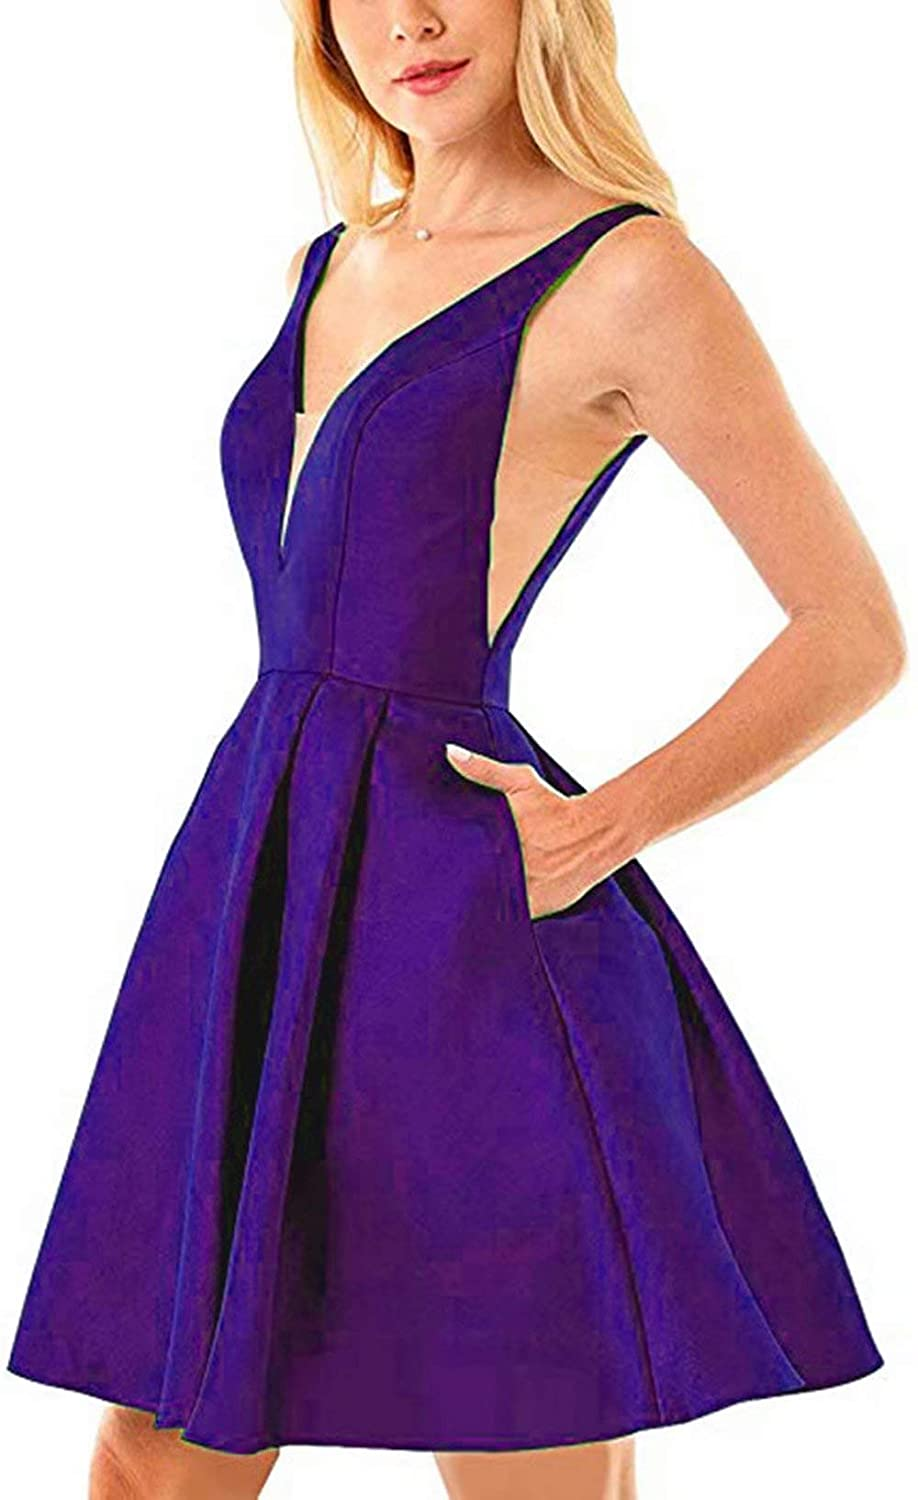 Purple Rmaytiked Womens V Neck Prom Dresses Short 2019 Satin A Line Homecoming Dresses with Pockets